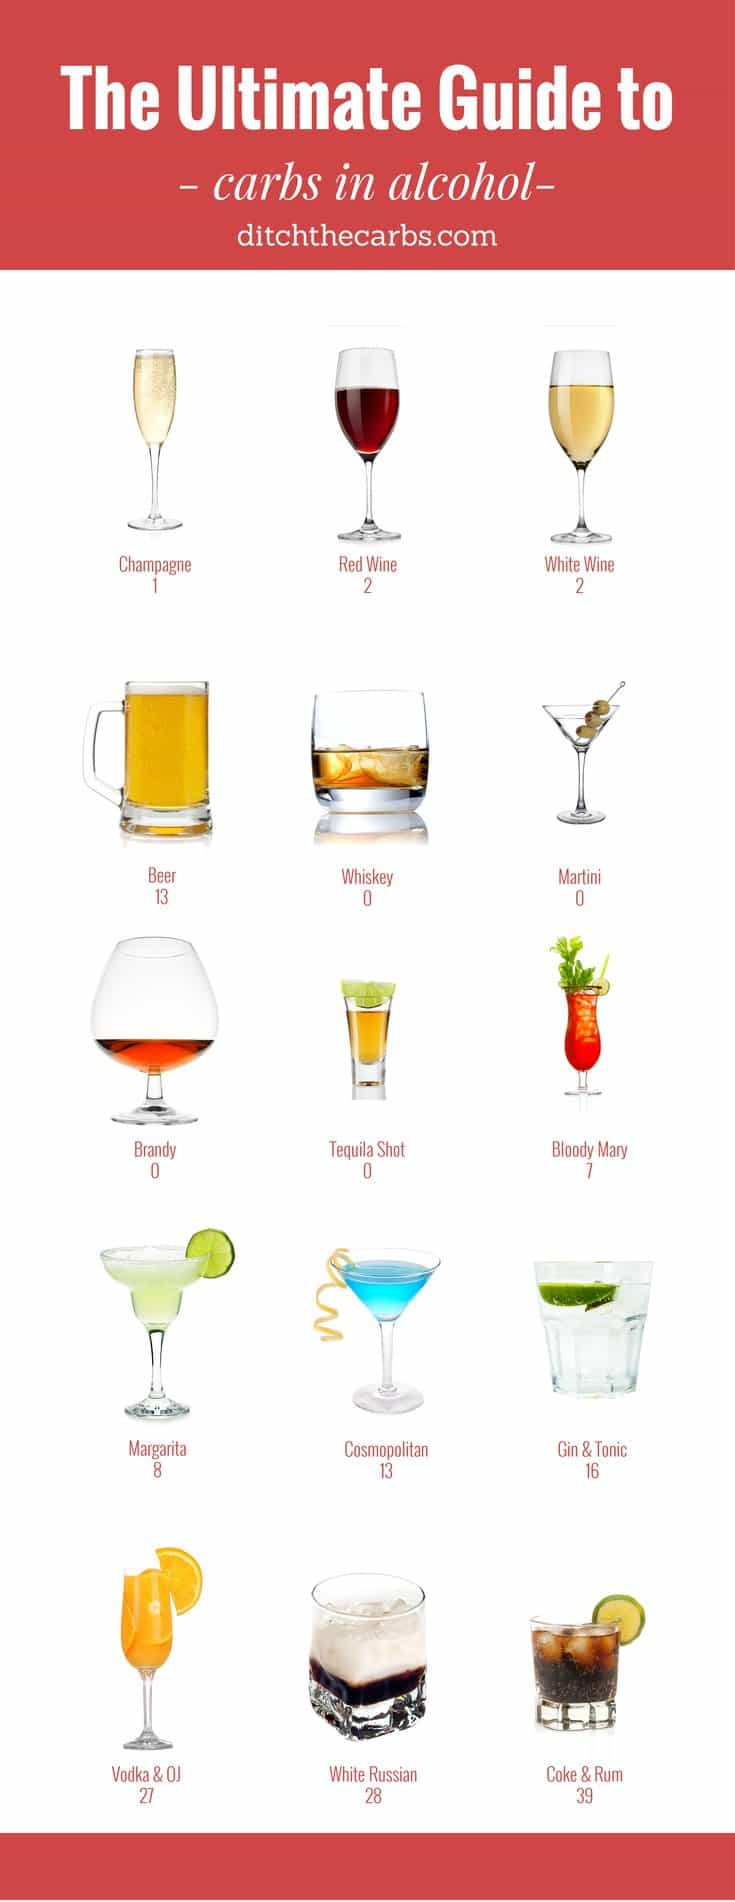 Champaign clipart alcoholic drink. The ultimate guide to